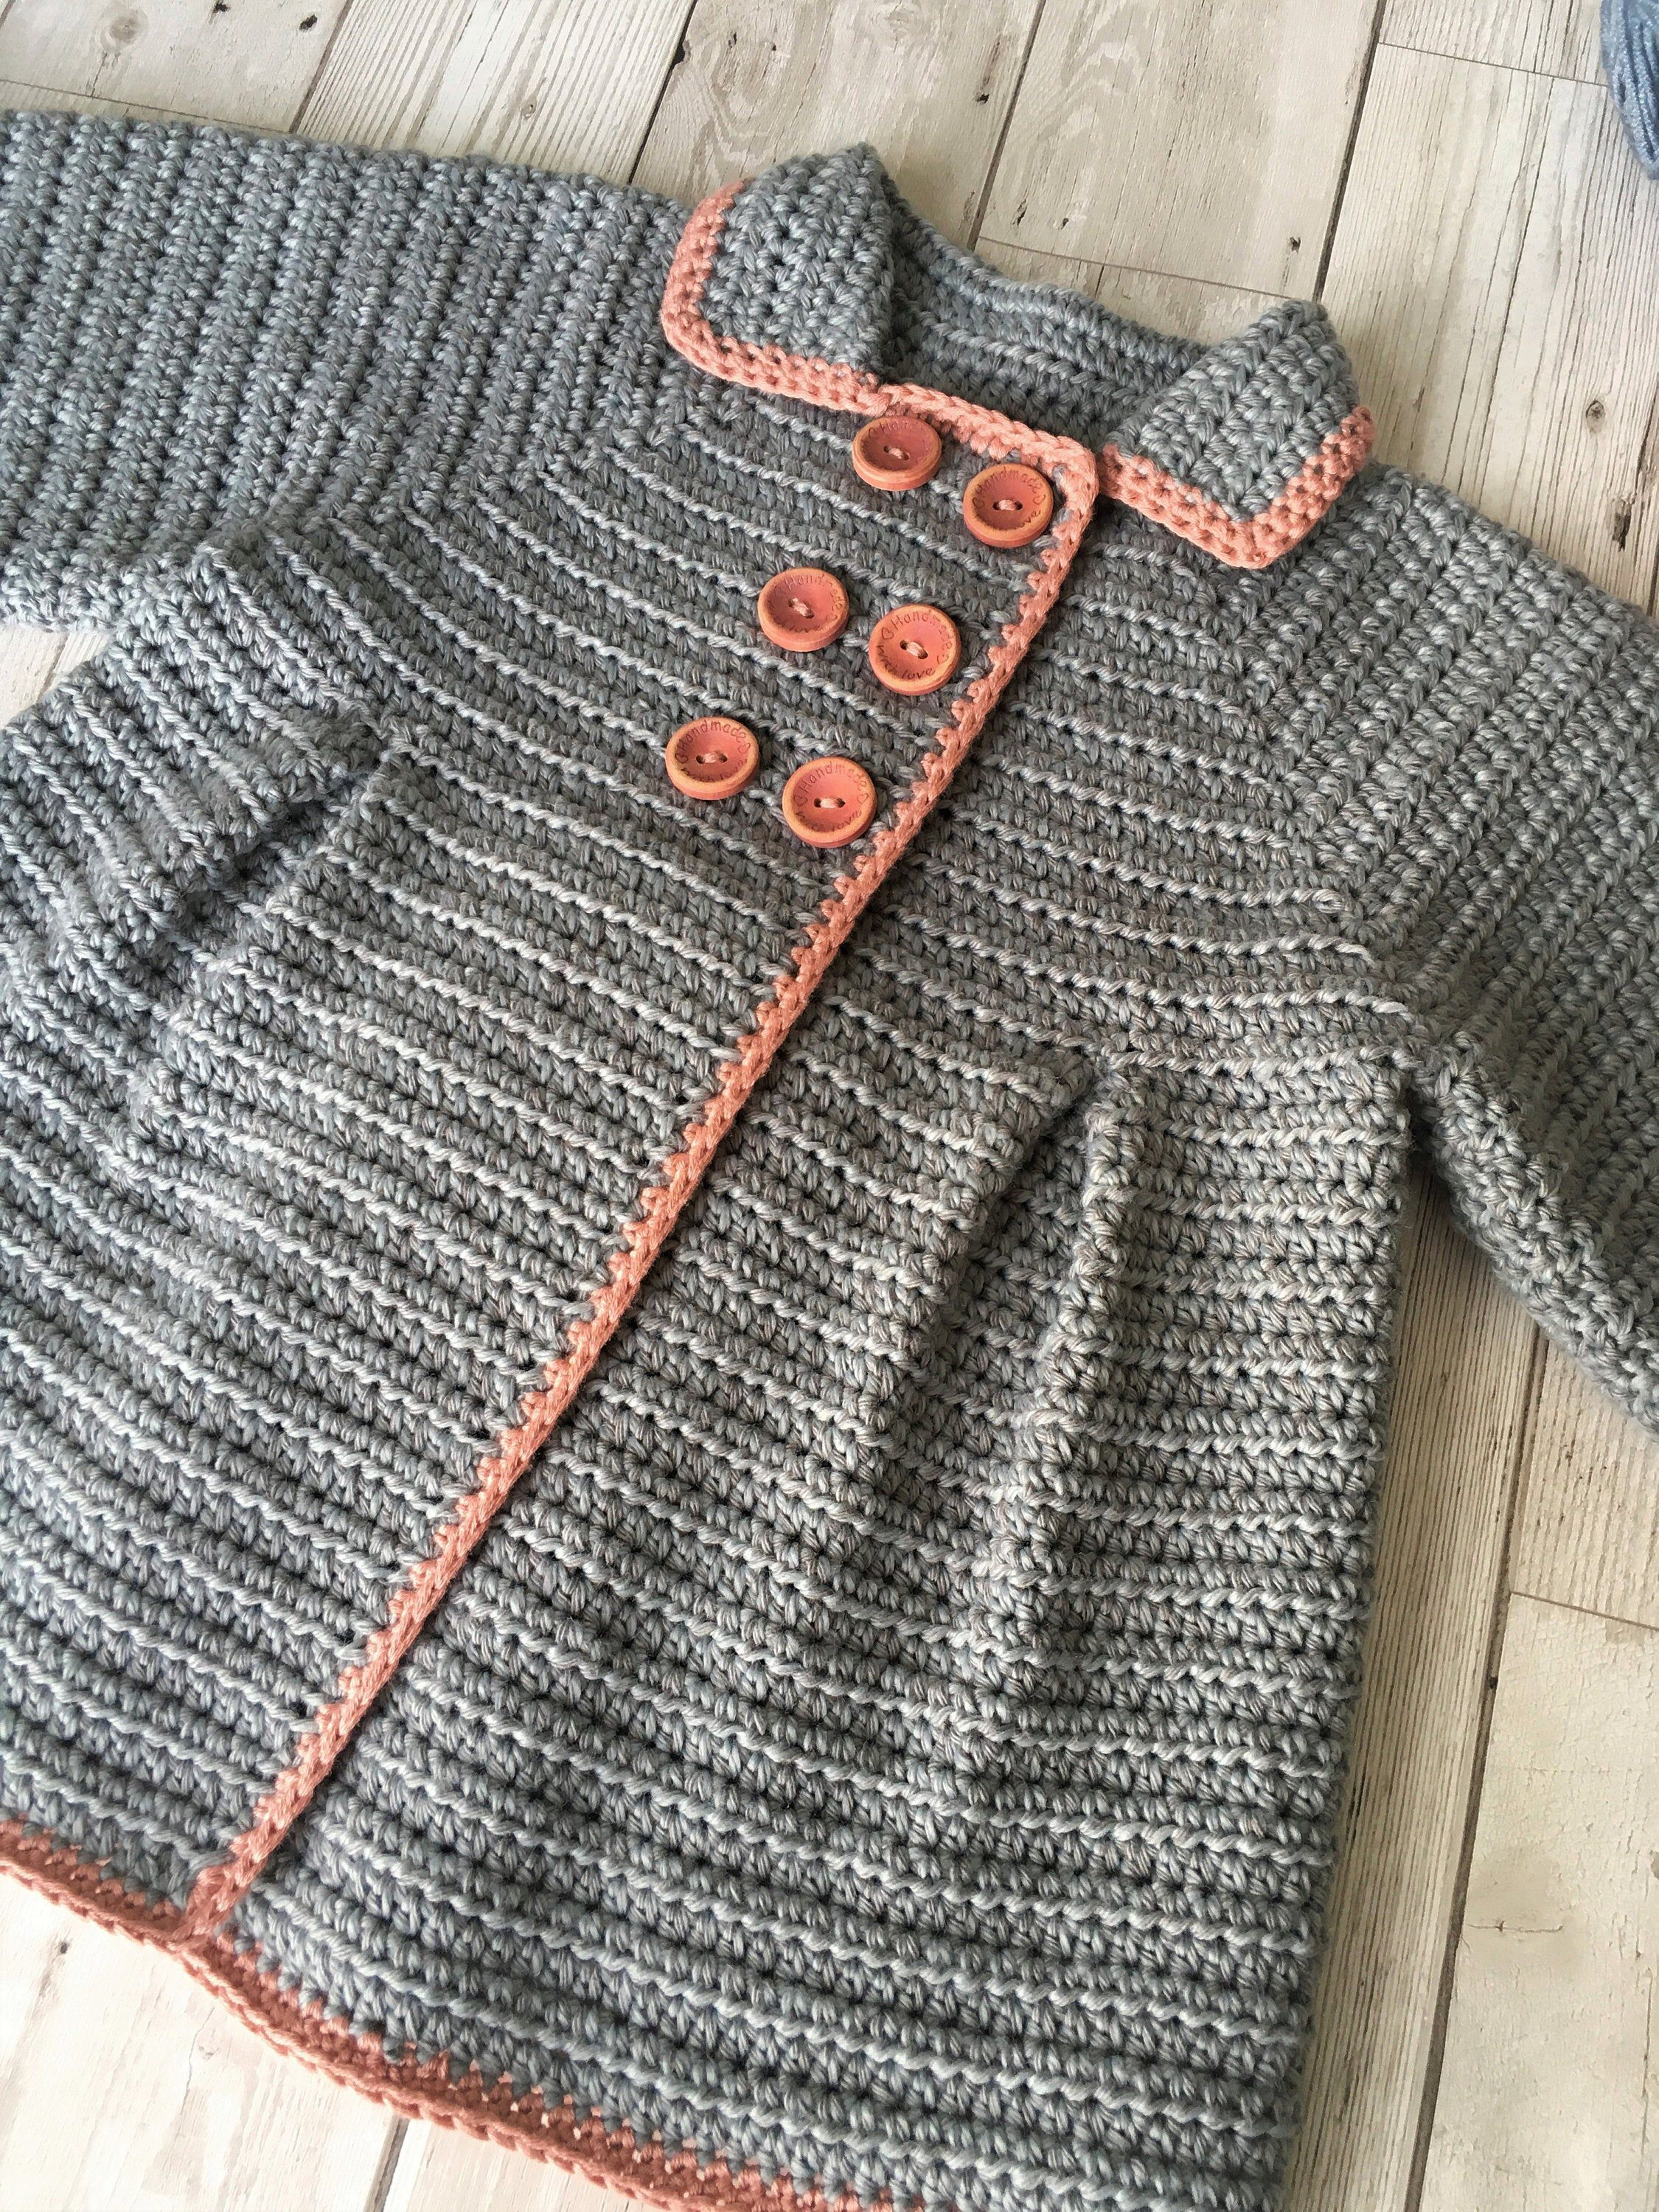 Crochet Pattern Baby Coat - 6 months to 36 months